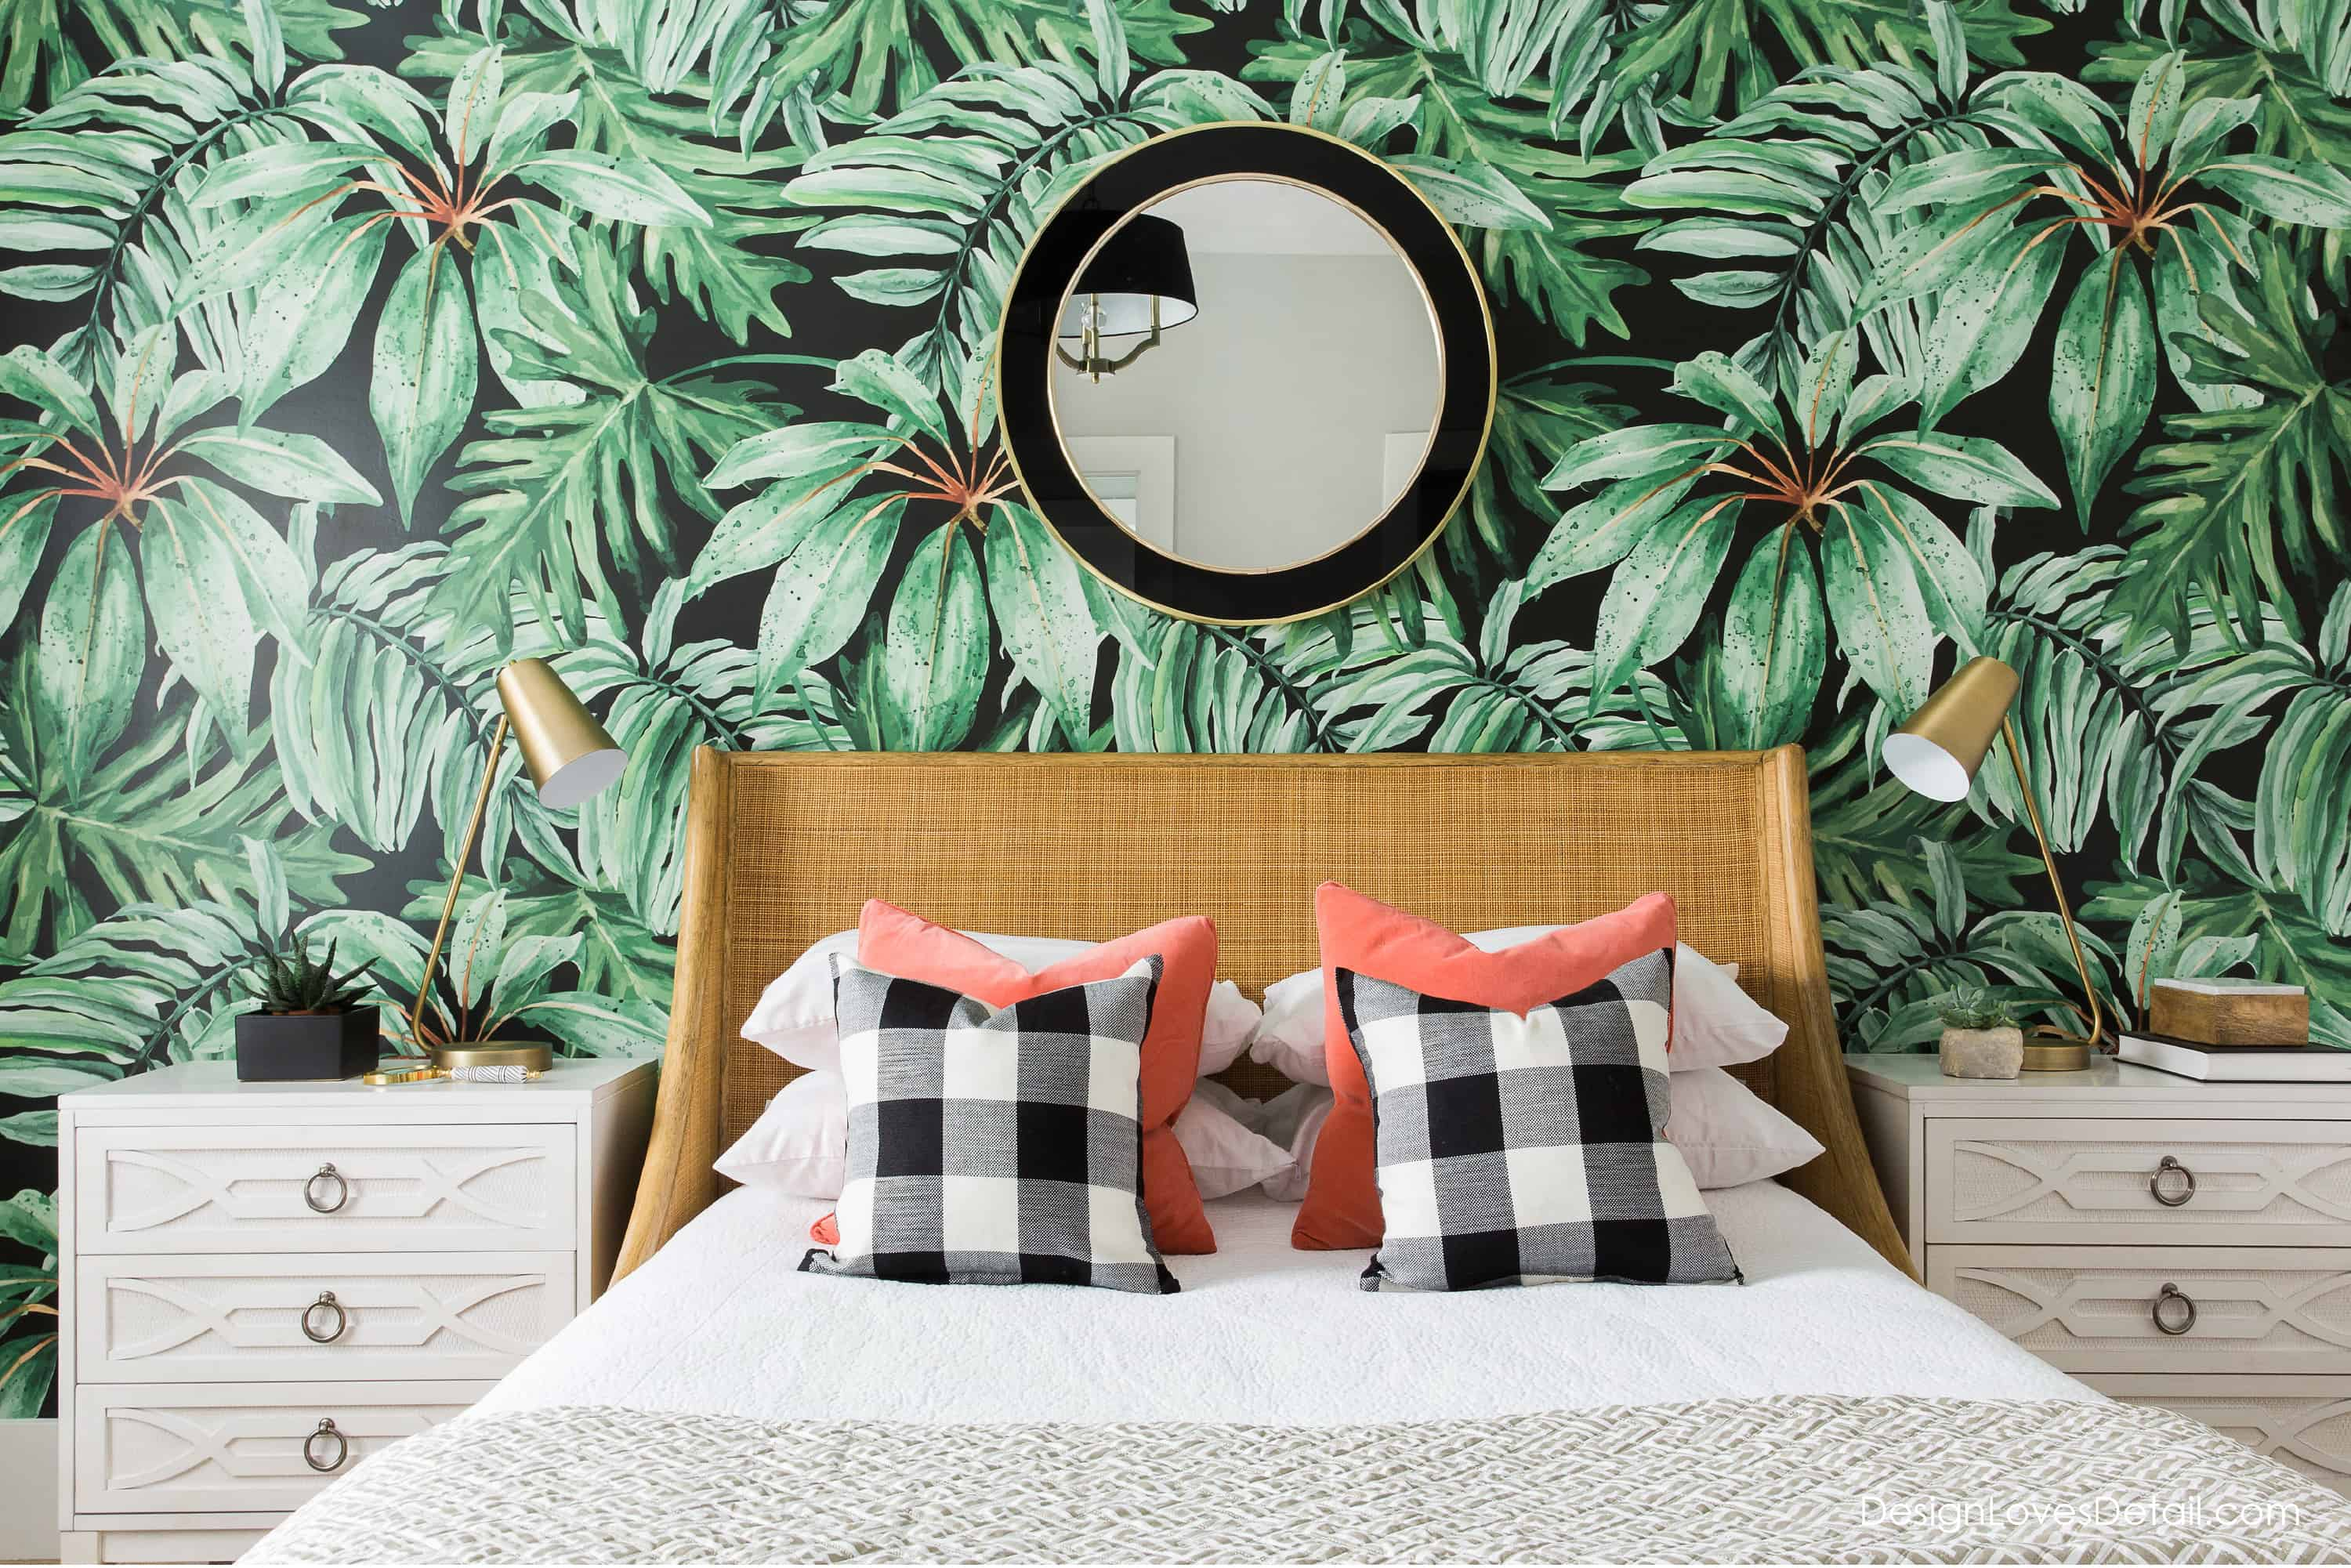 There is something very festive and fun about having a tropical wallpaper in your home